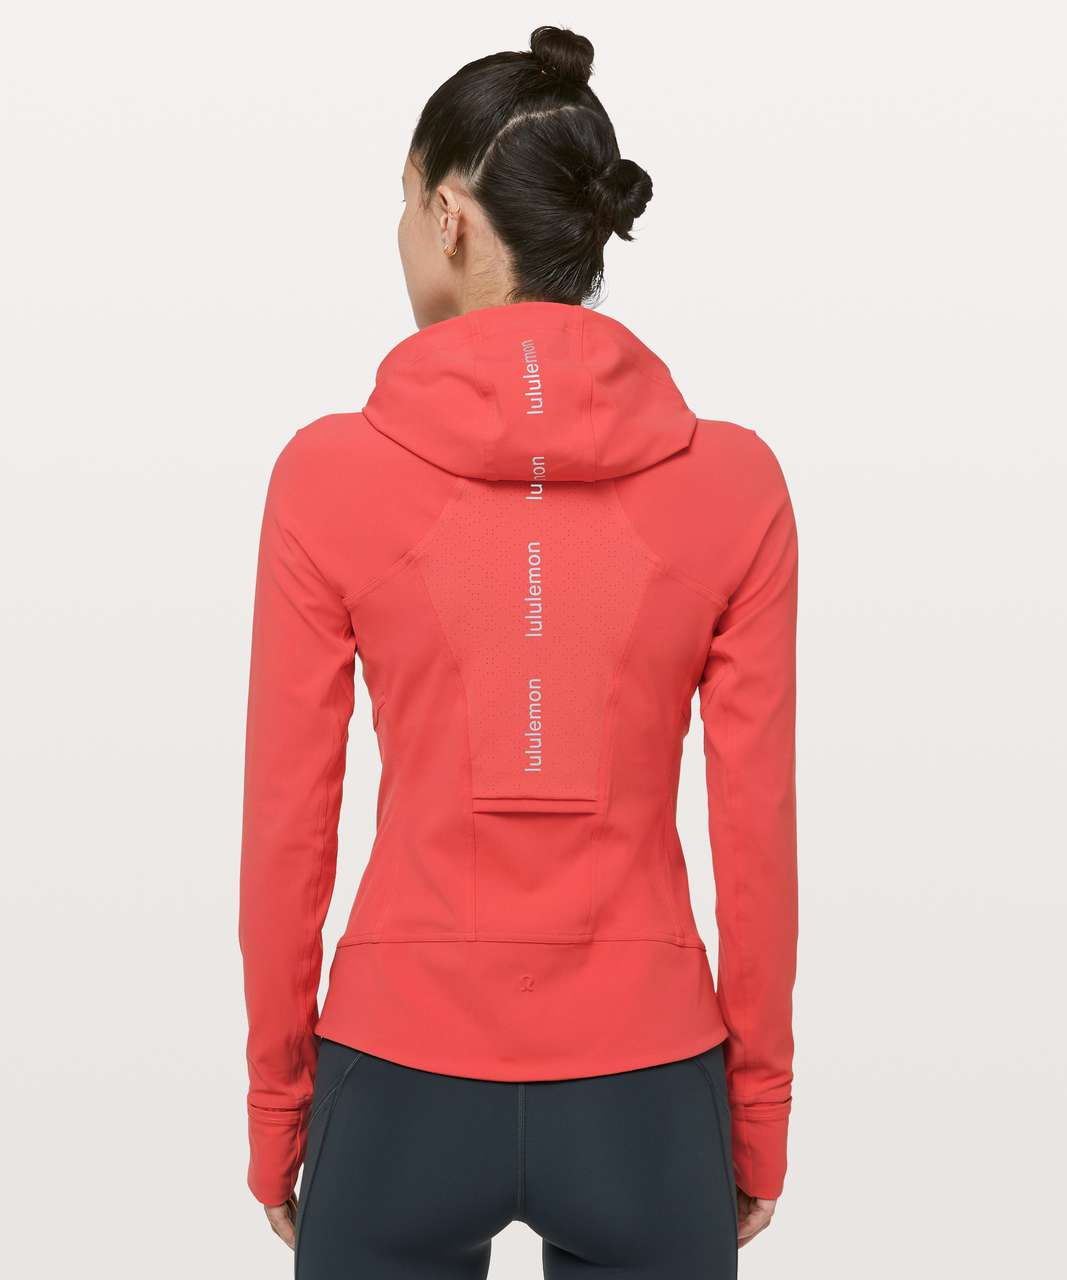 Lululemon Dash Into Dusk Jacket - Poppy Coral